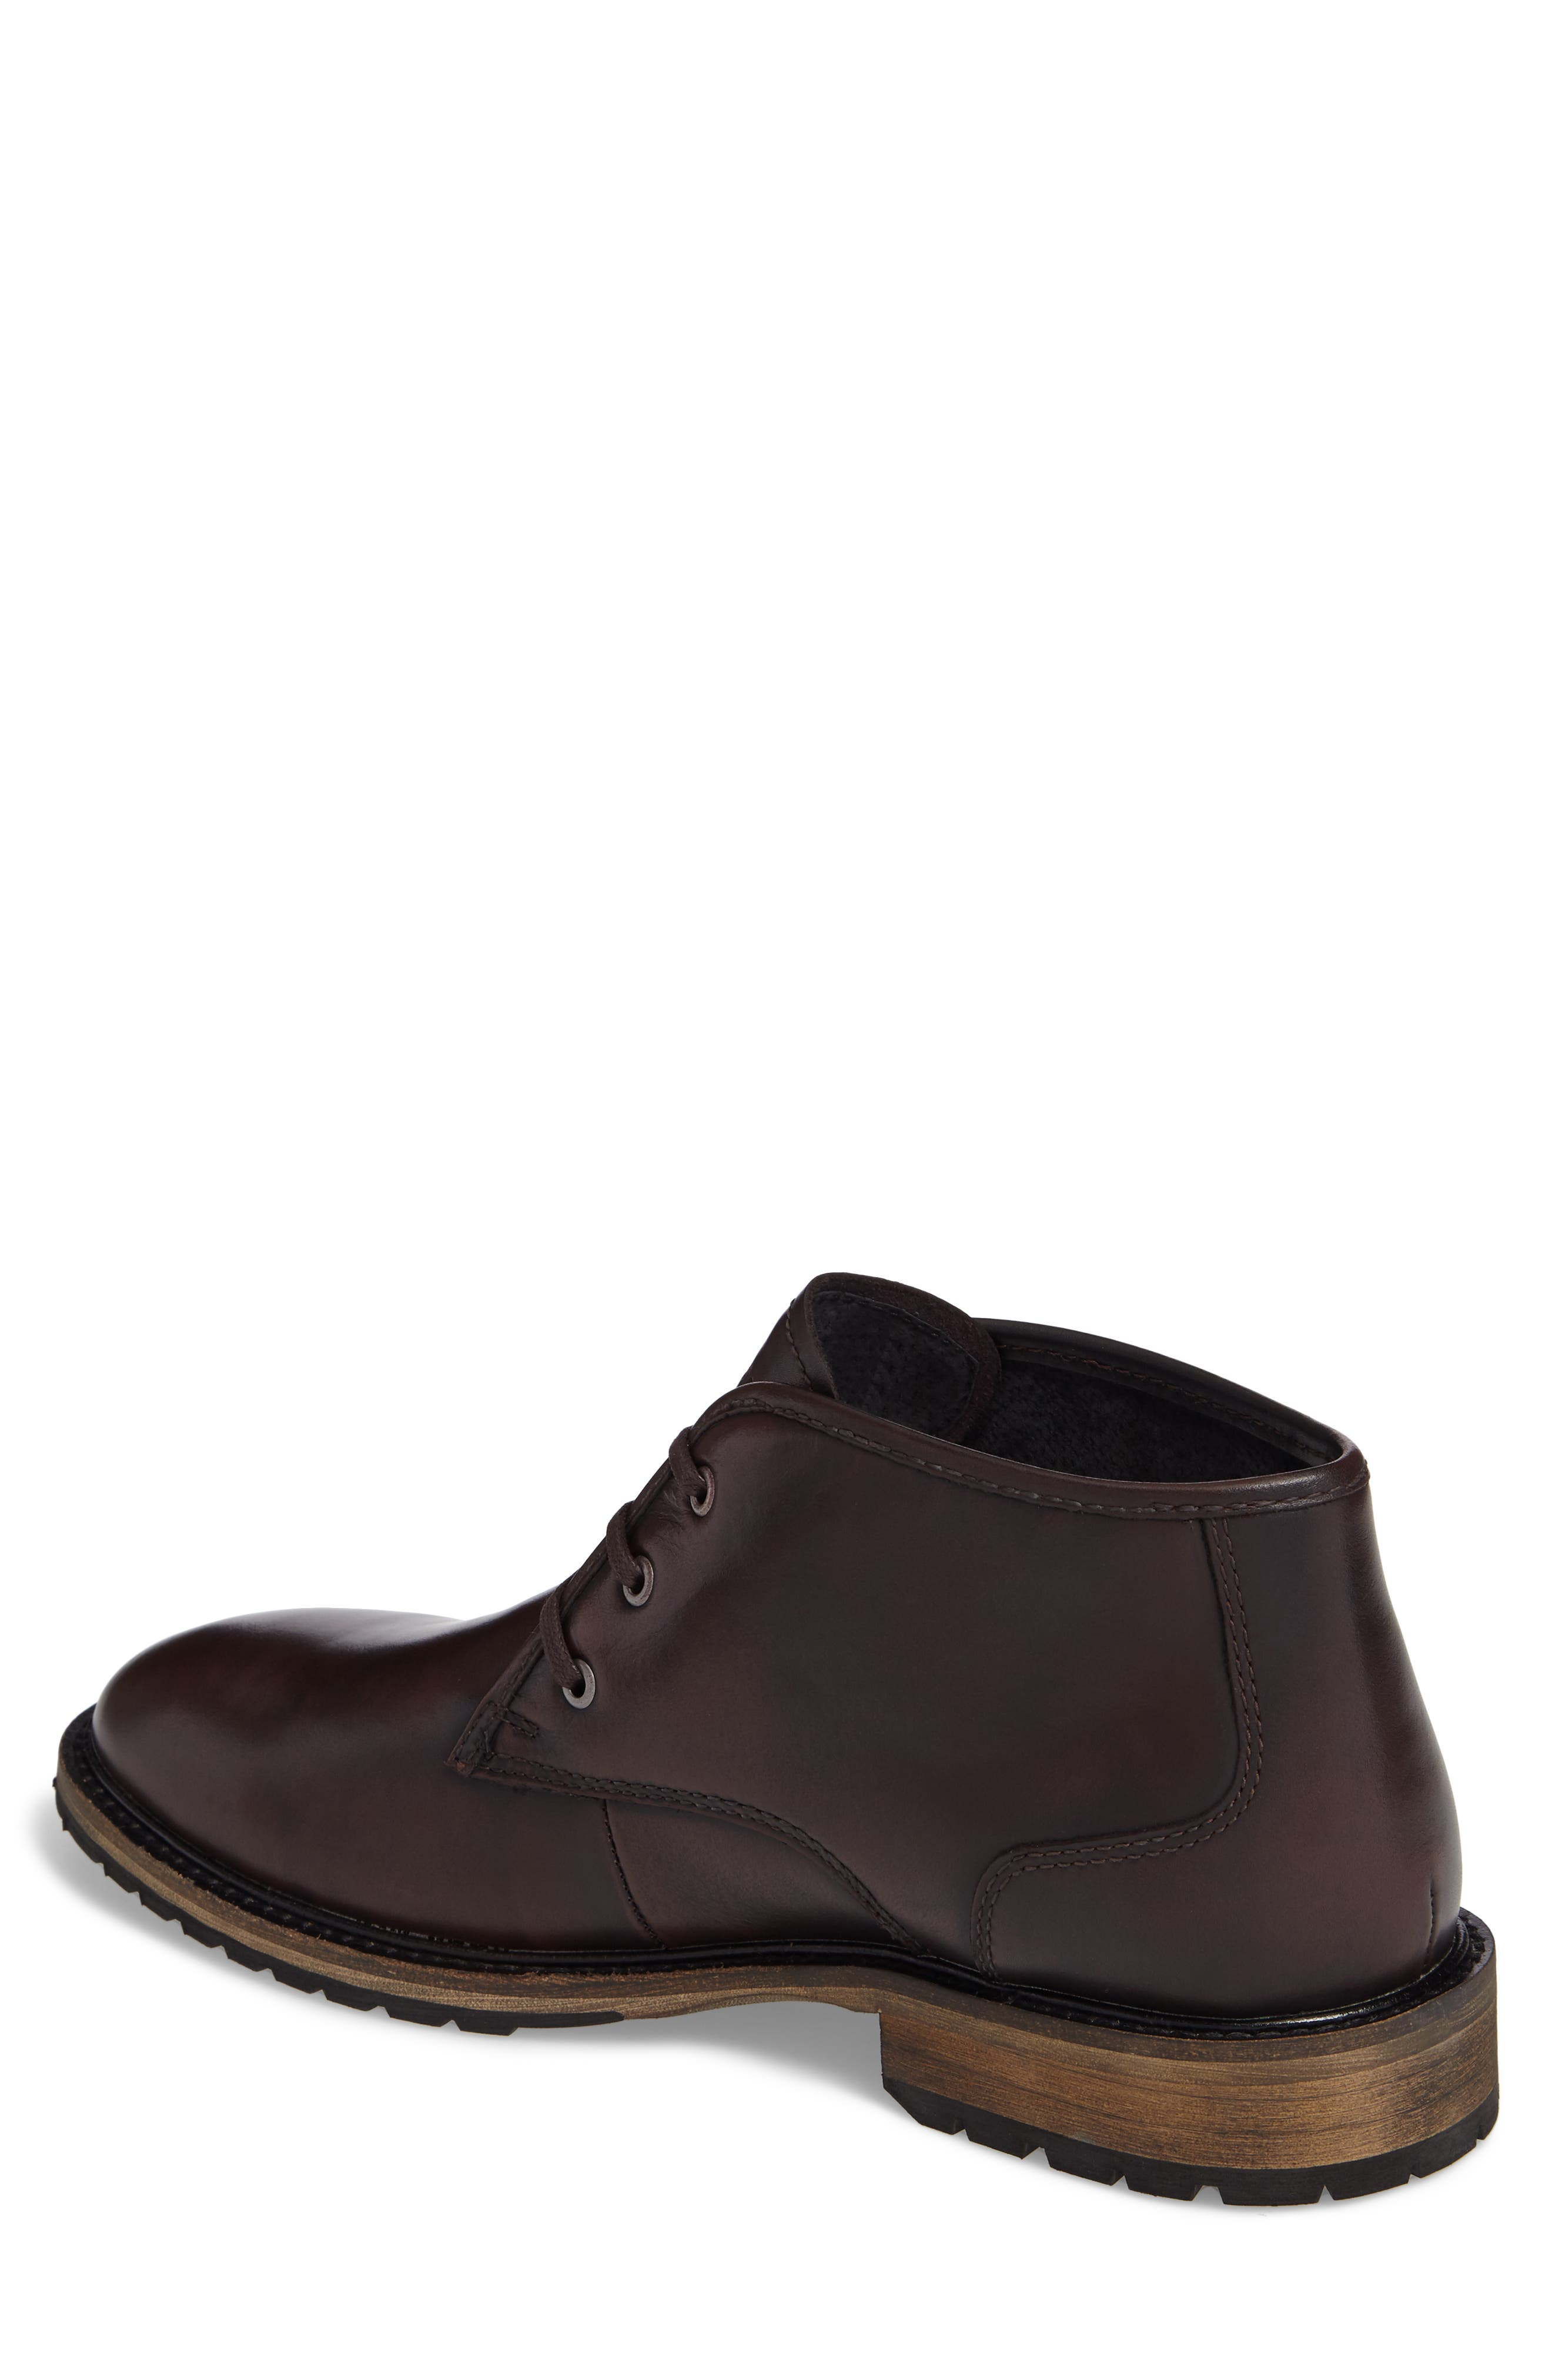 Alternate Image 2  - Andrew Marc Woodside Chukka Boot (Men)